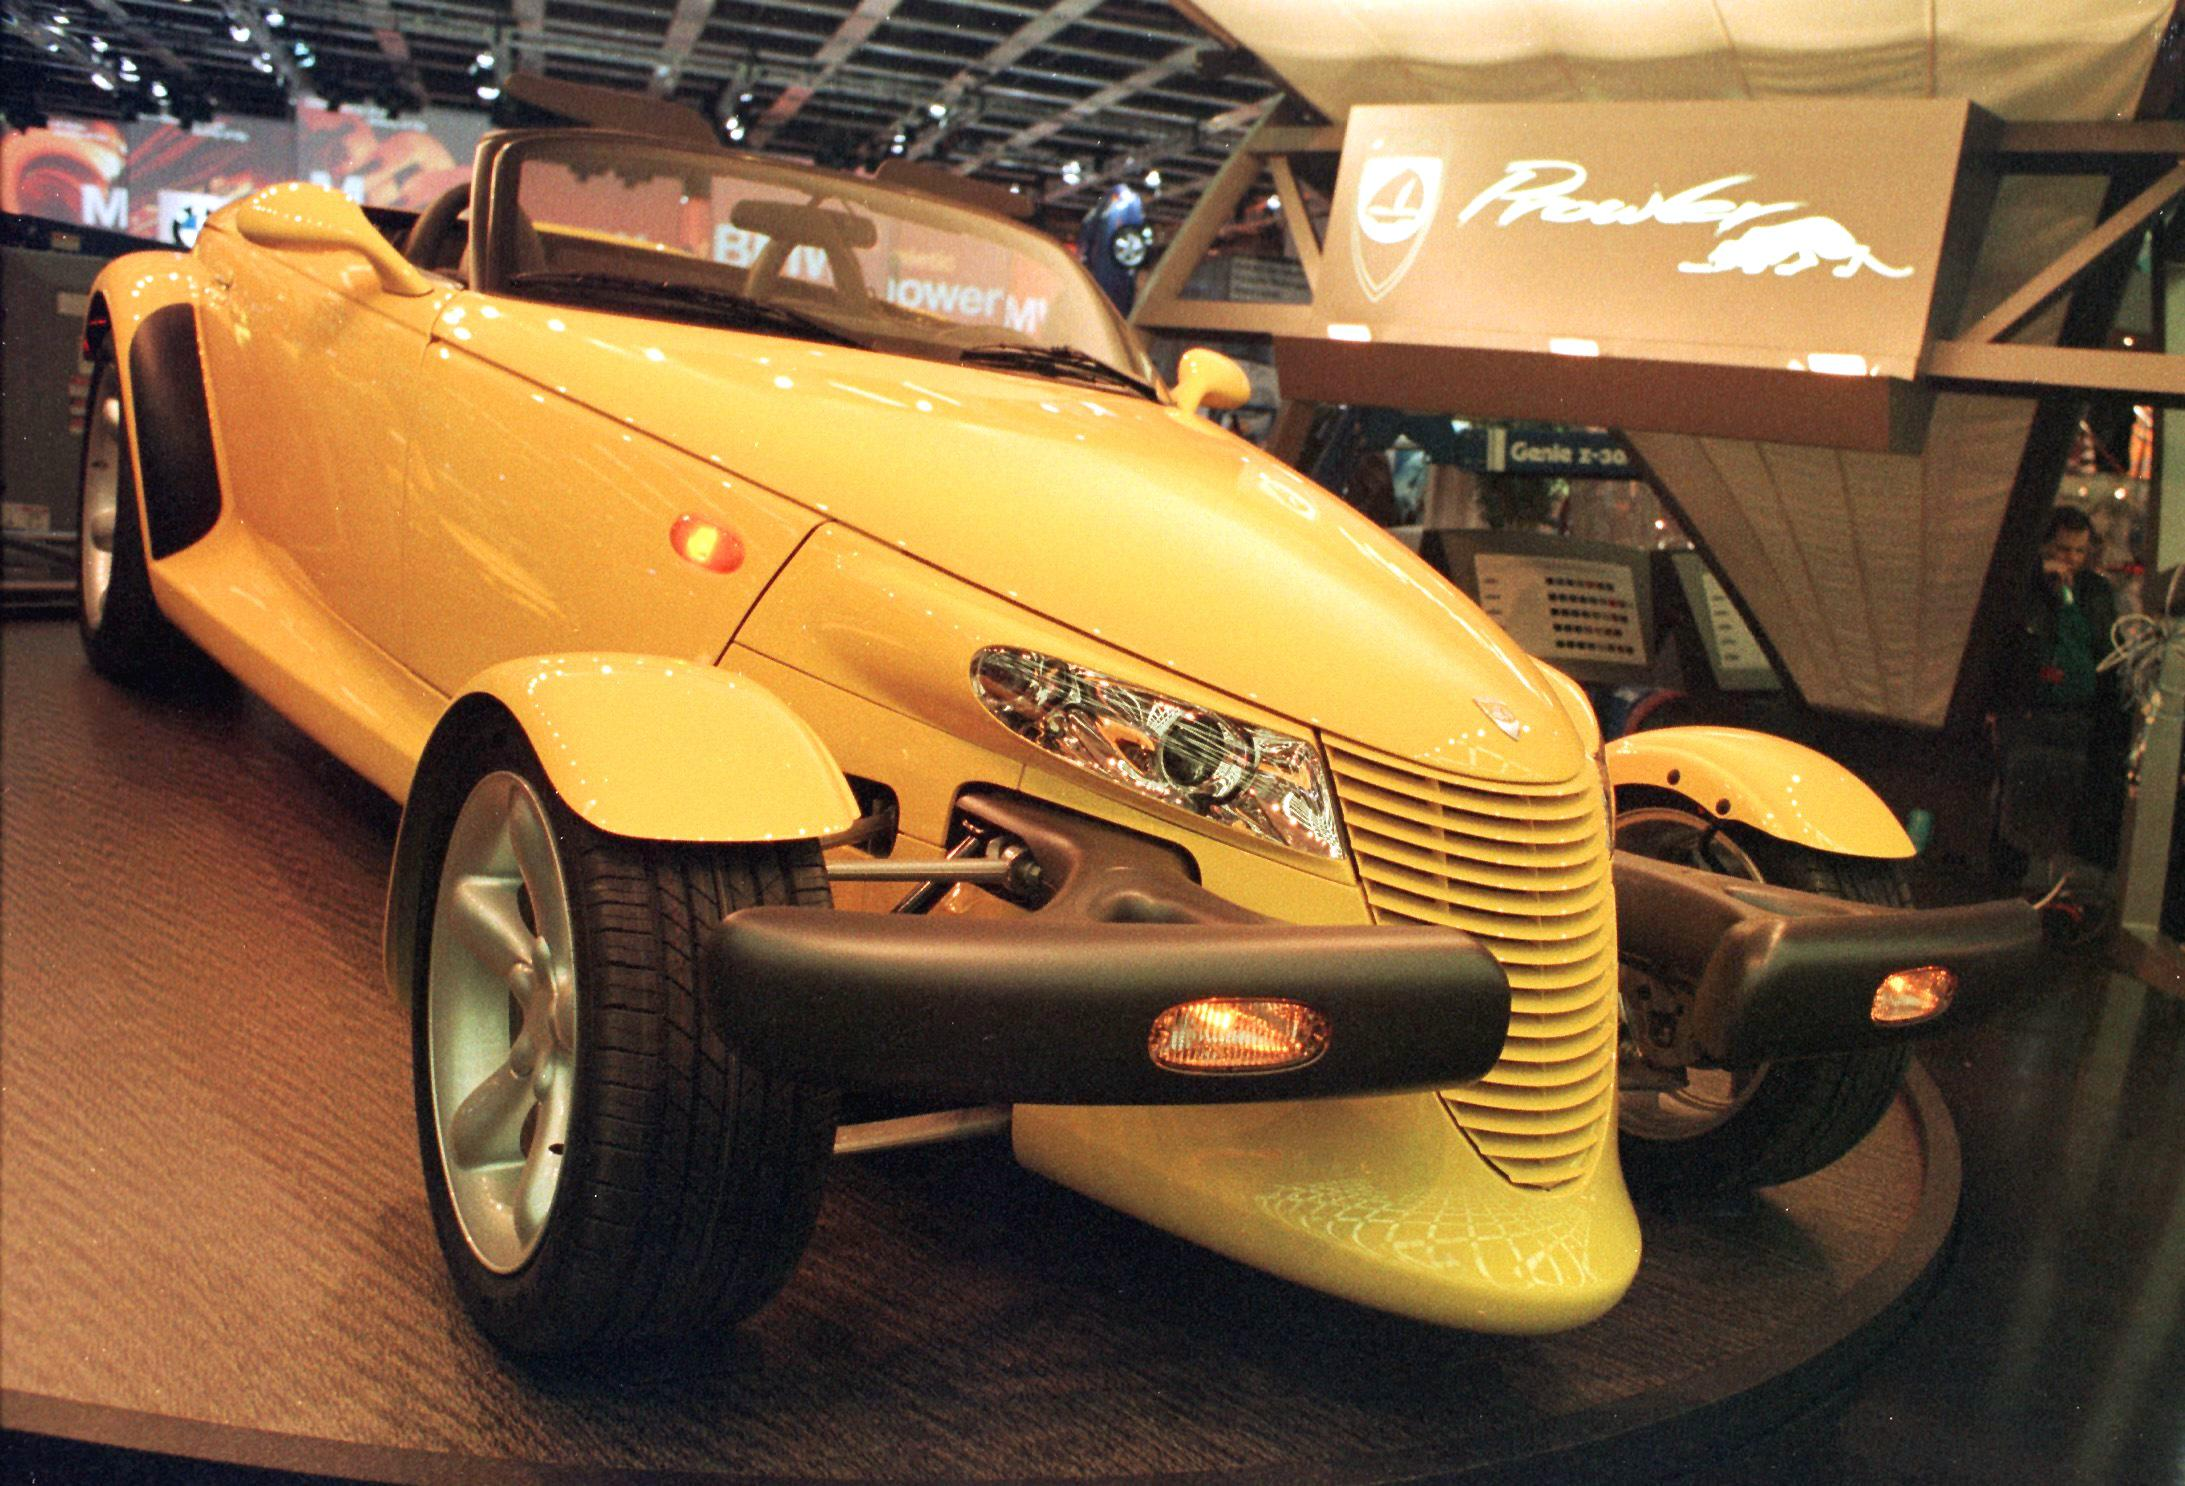 The Plymouth Prowler is on display 07 January at t